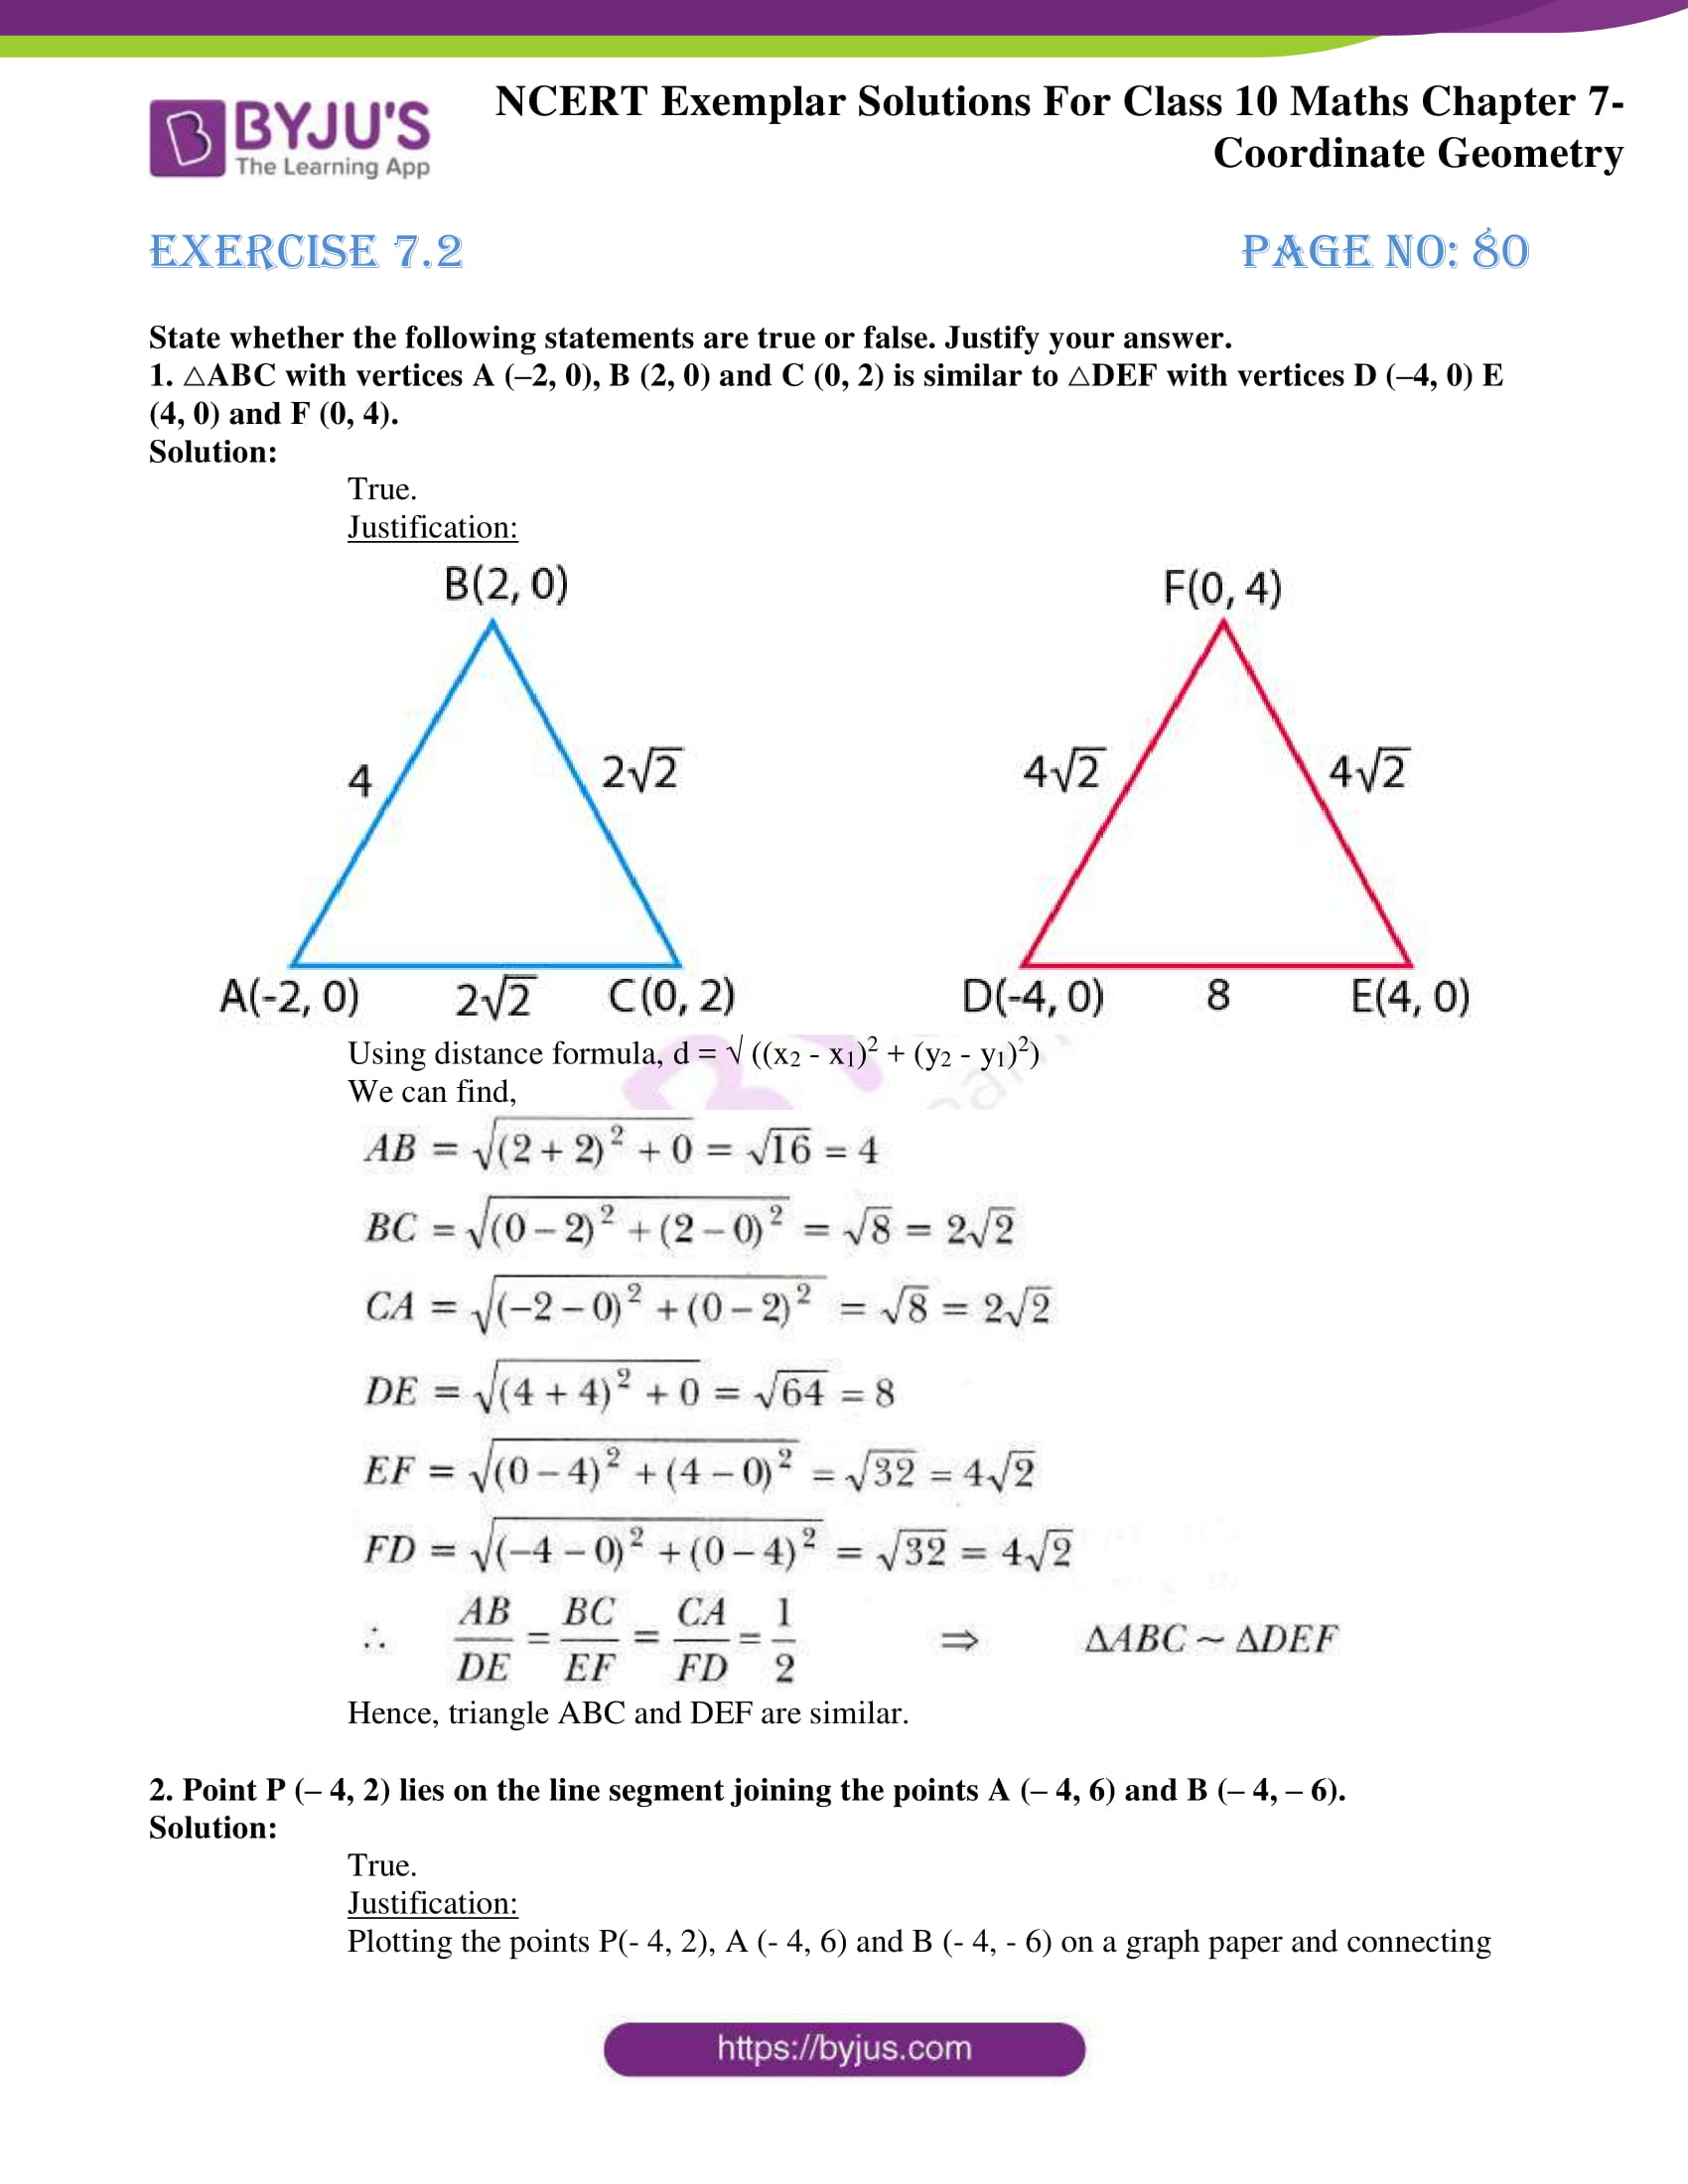 ncert exemplar solution for class 10 maths chapter 7